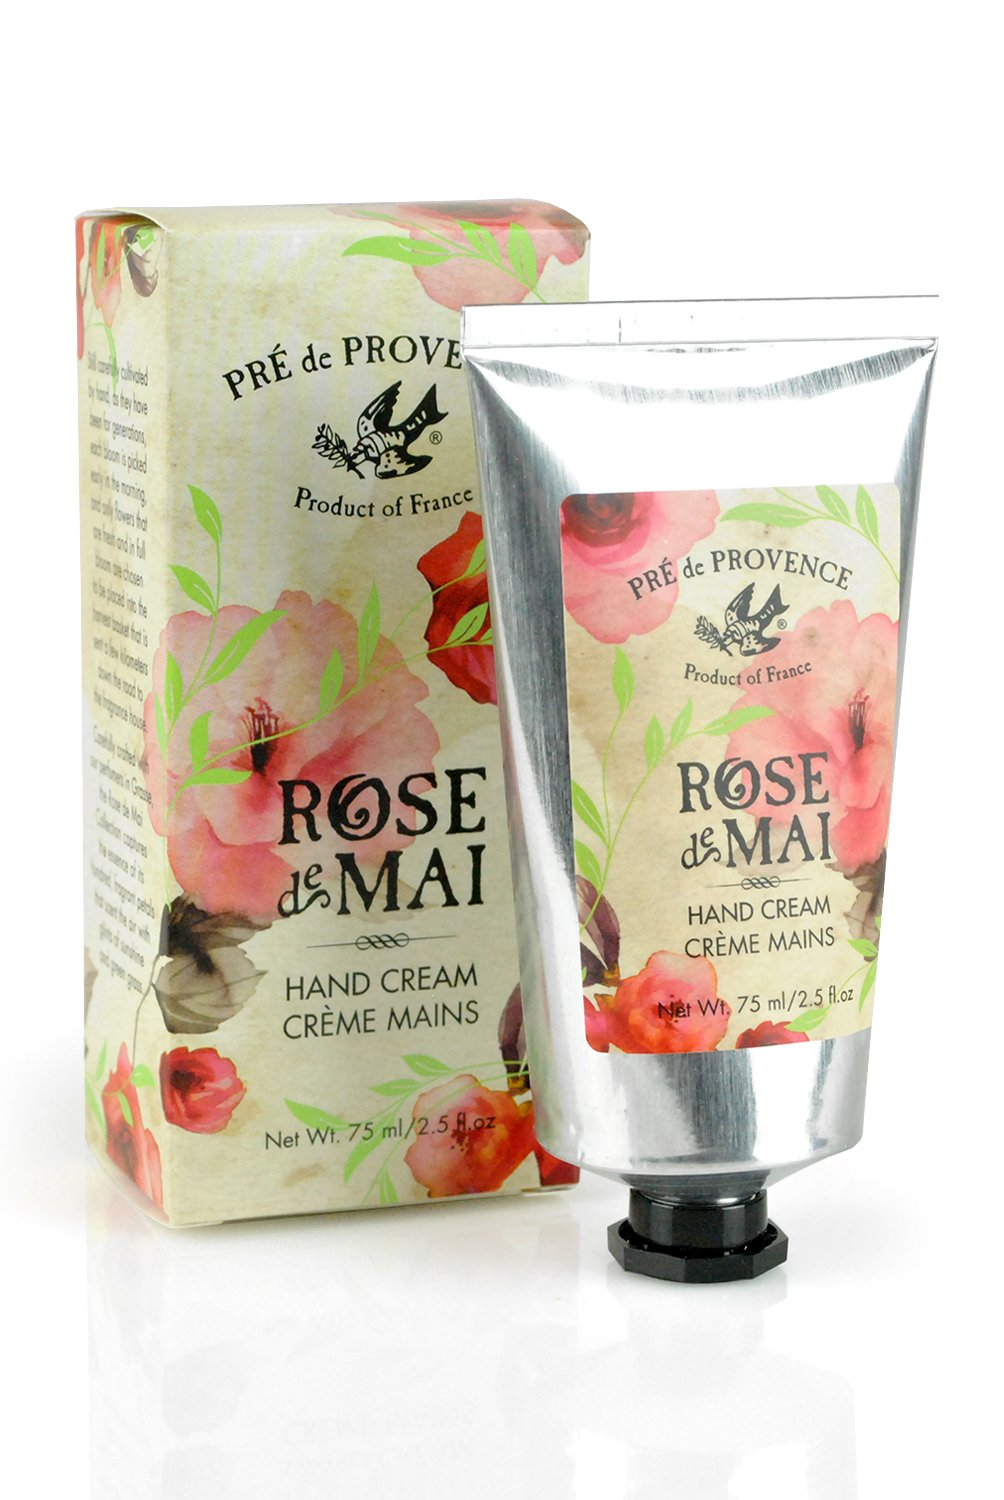 Pre de Provence Hand Cream or Lotion to Soothe, Soften, and Hydrate with Shea Butter, Vitamin E, Olive Oil, Botanical Rose Blend Fragrance (2.5 fl oz) - Rose De Mai